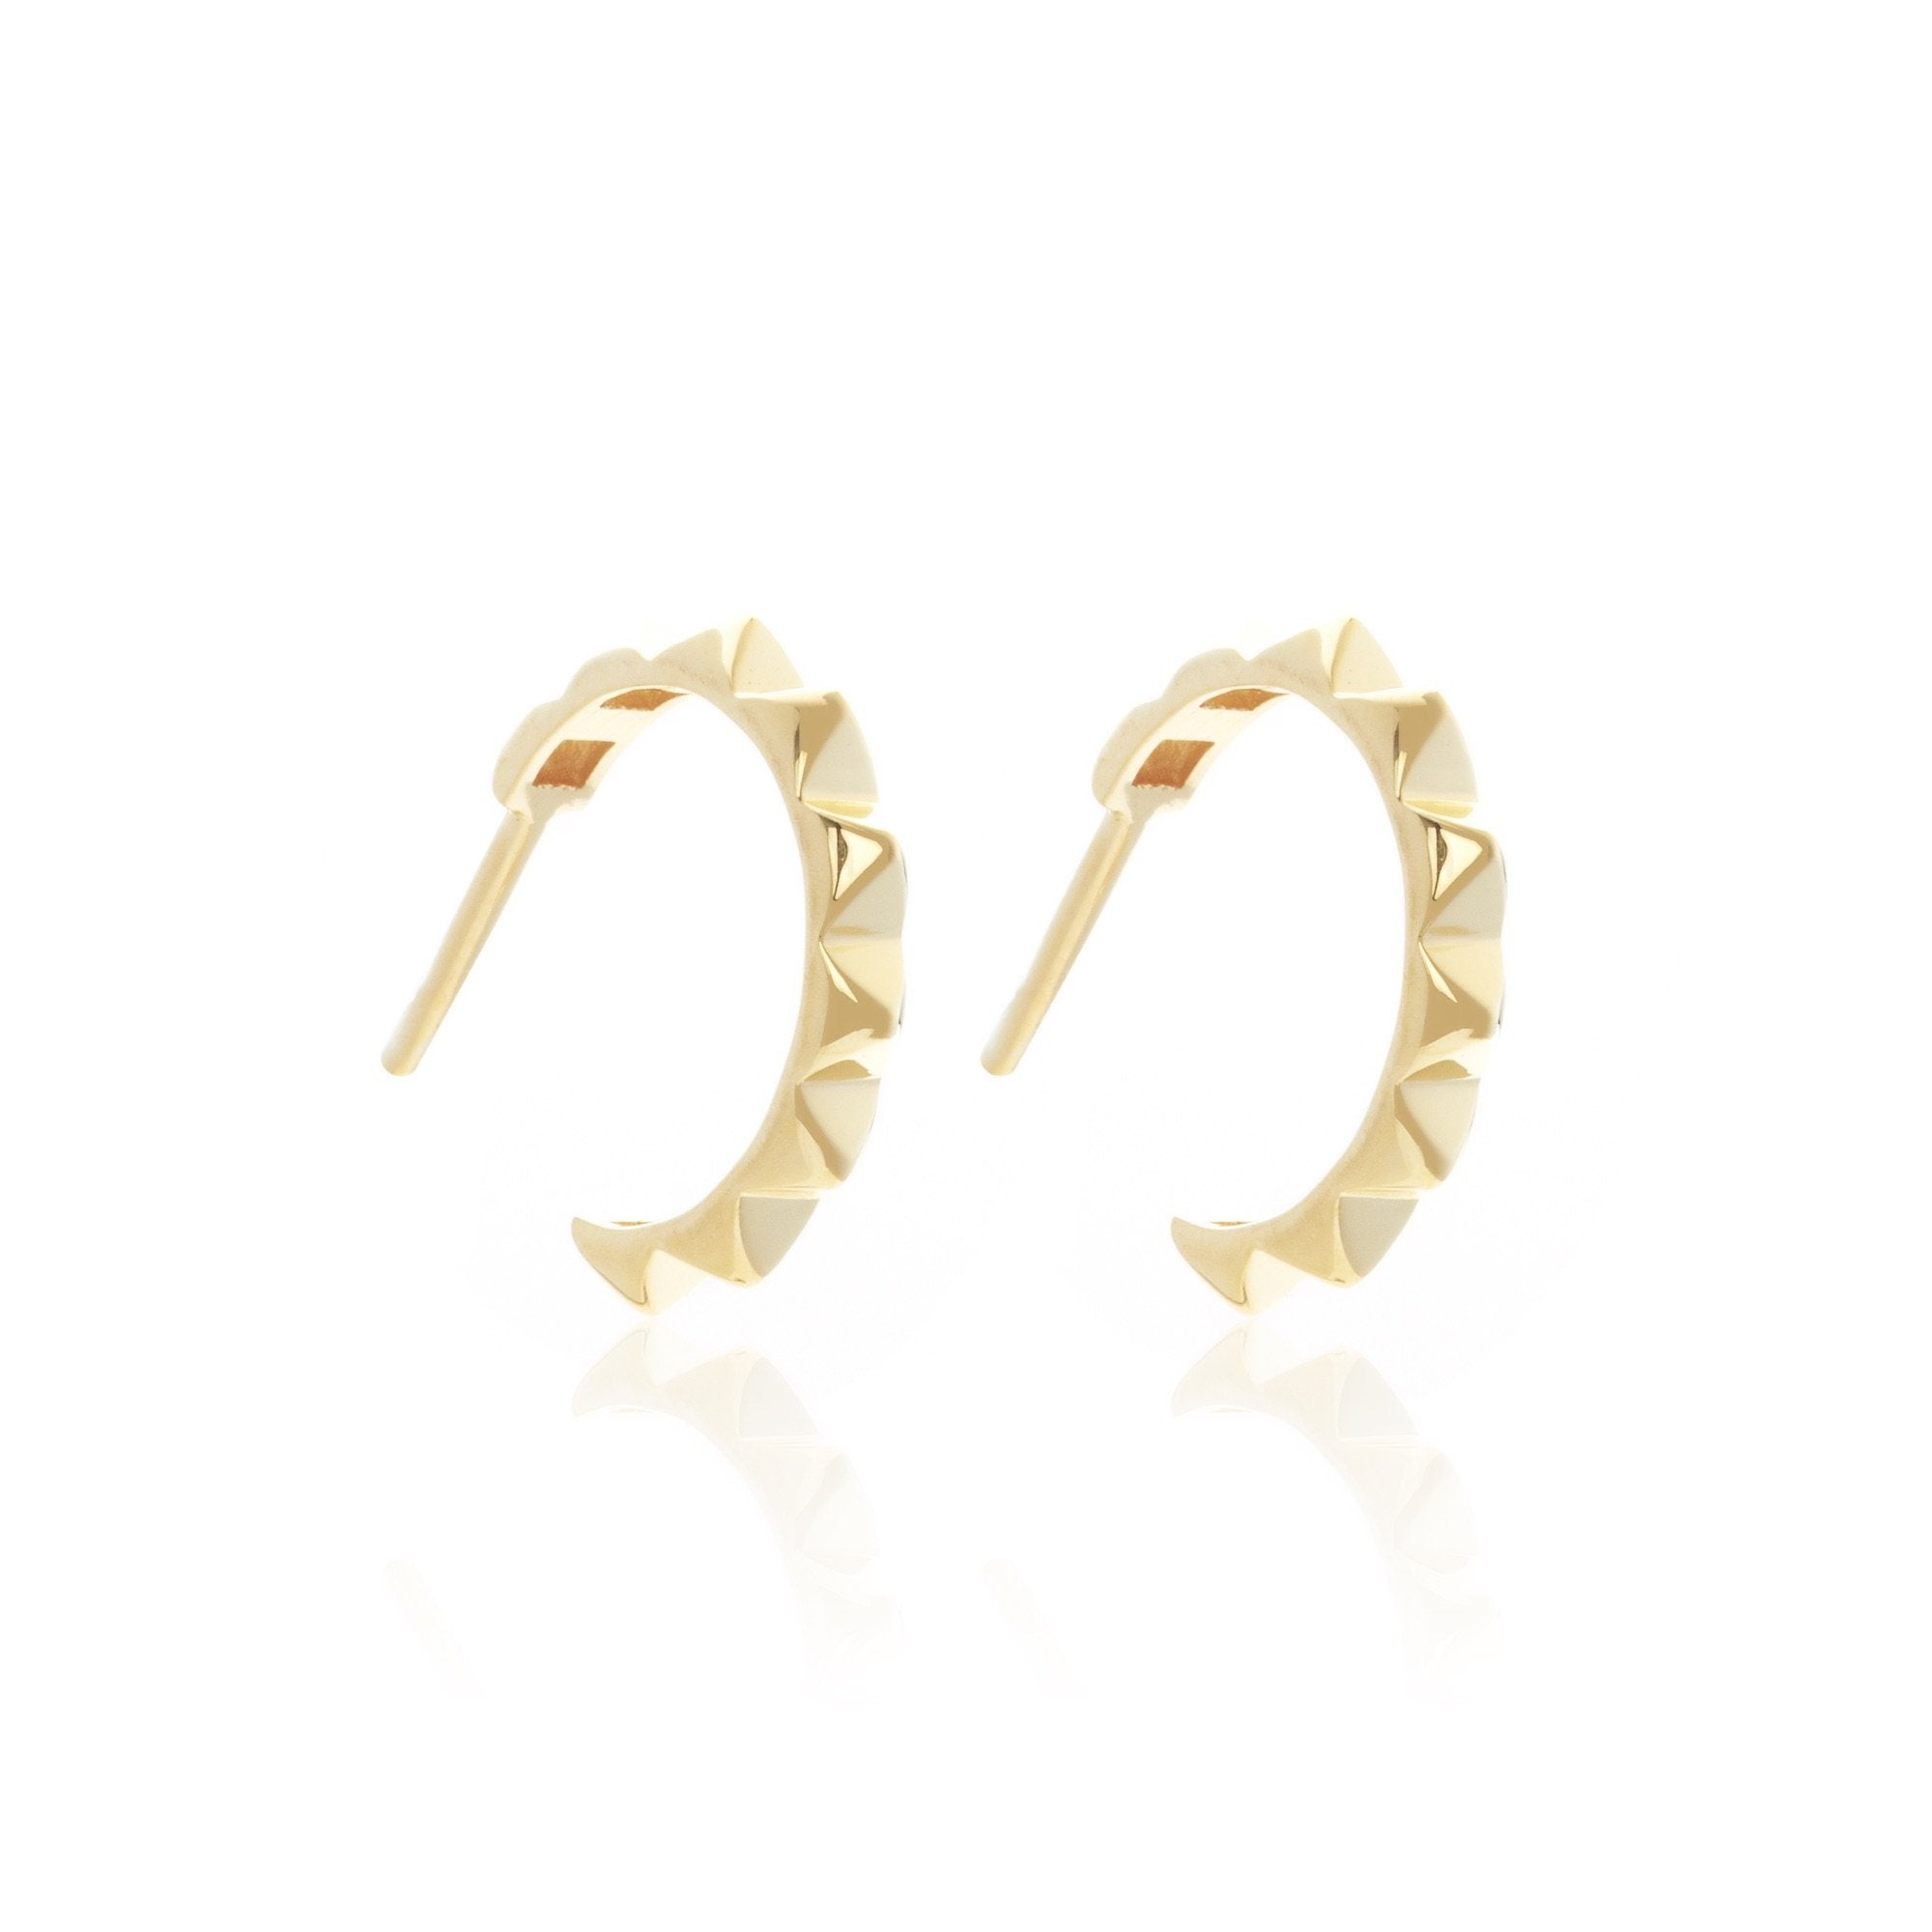 Silk & Steel Jewellery Perfect Party Hoop Earrings Gold plated Sterling Silver